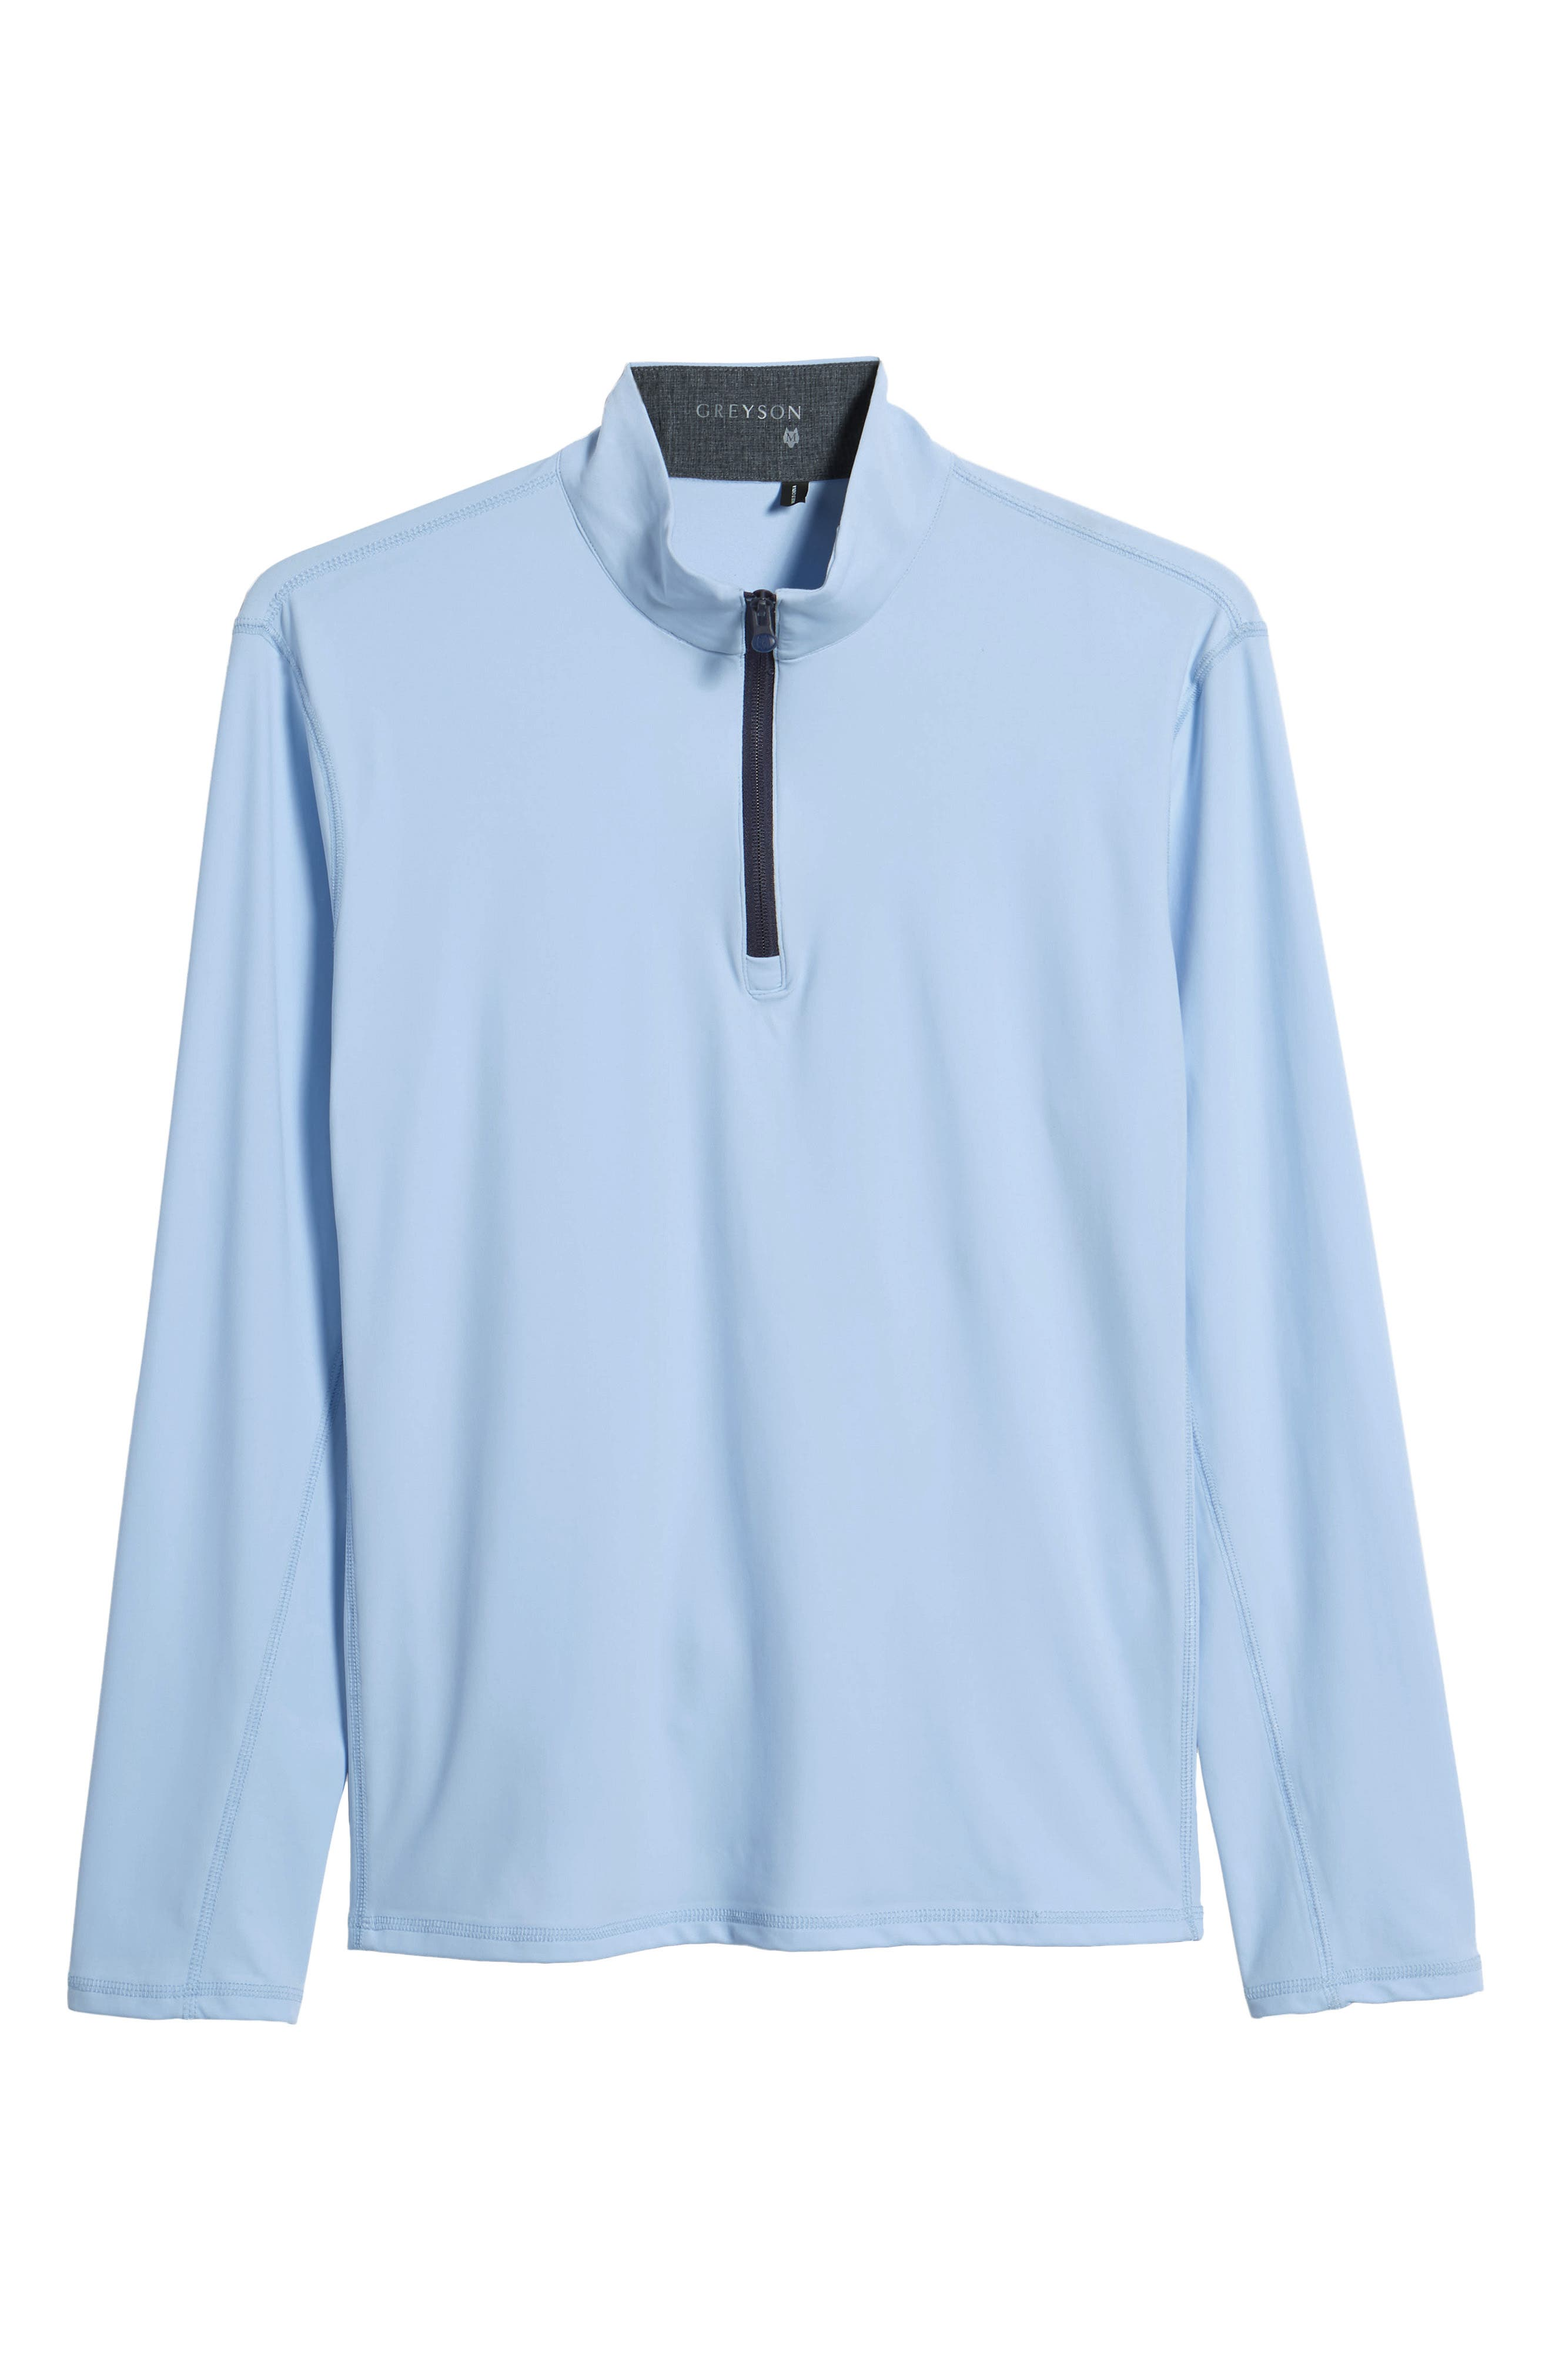 Tate Quarter Zip Pullover,                             Alternate thumbnail 6, color,                             WOLF